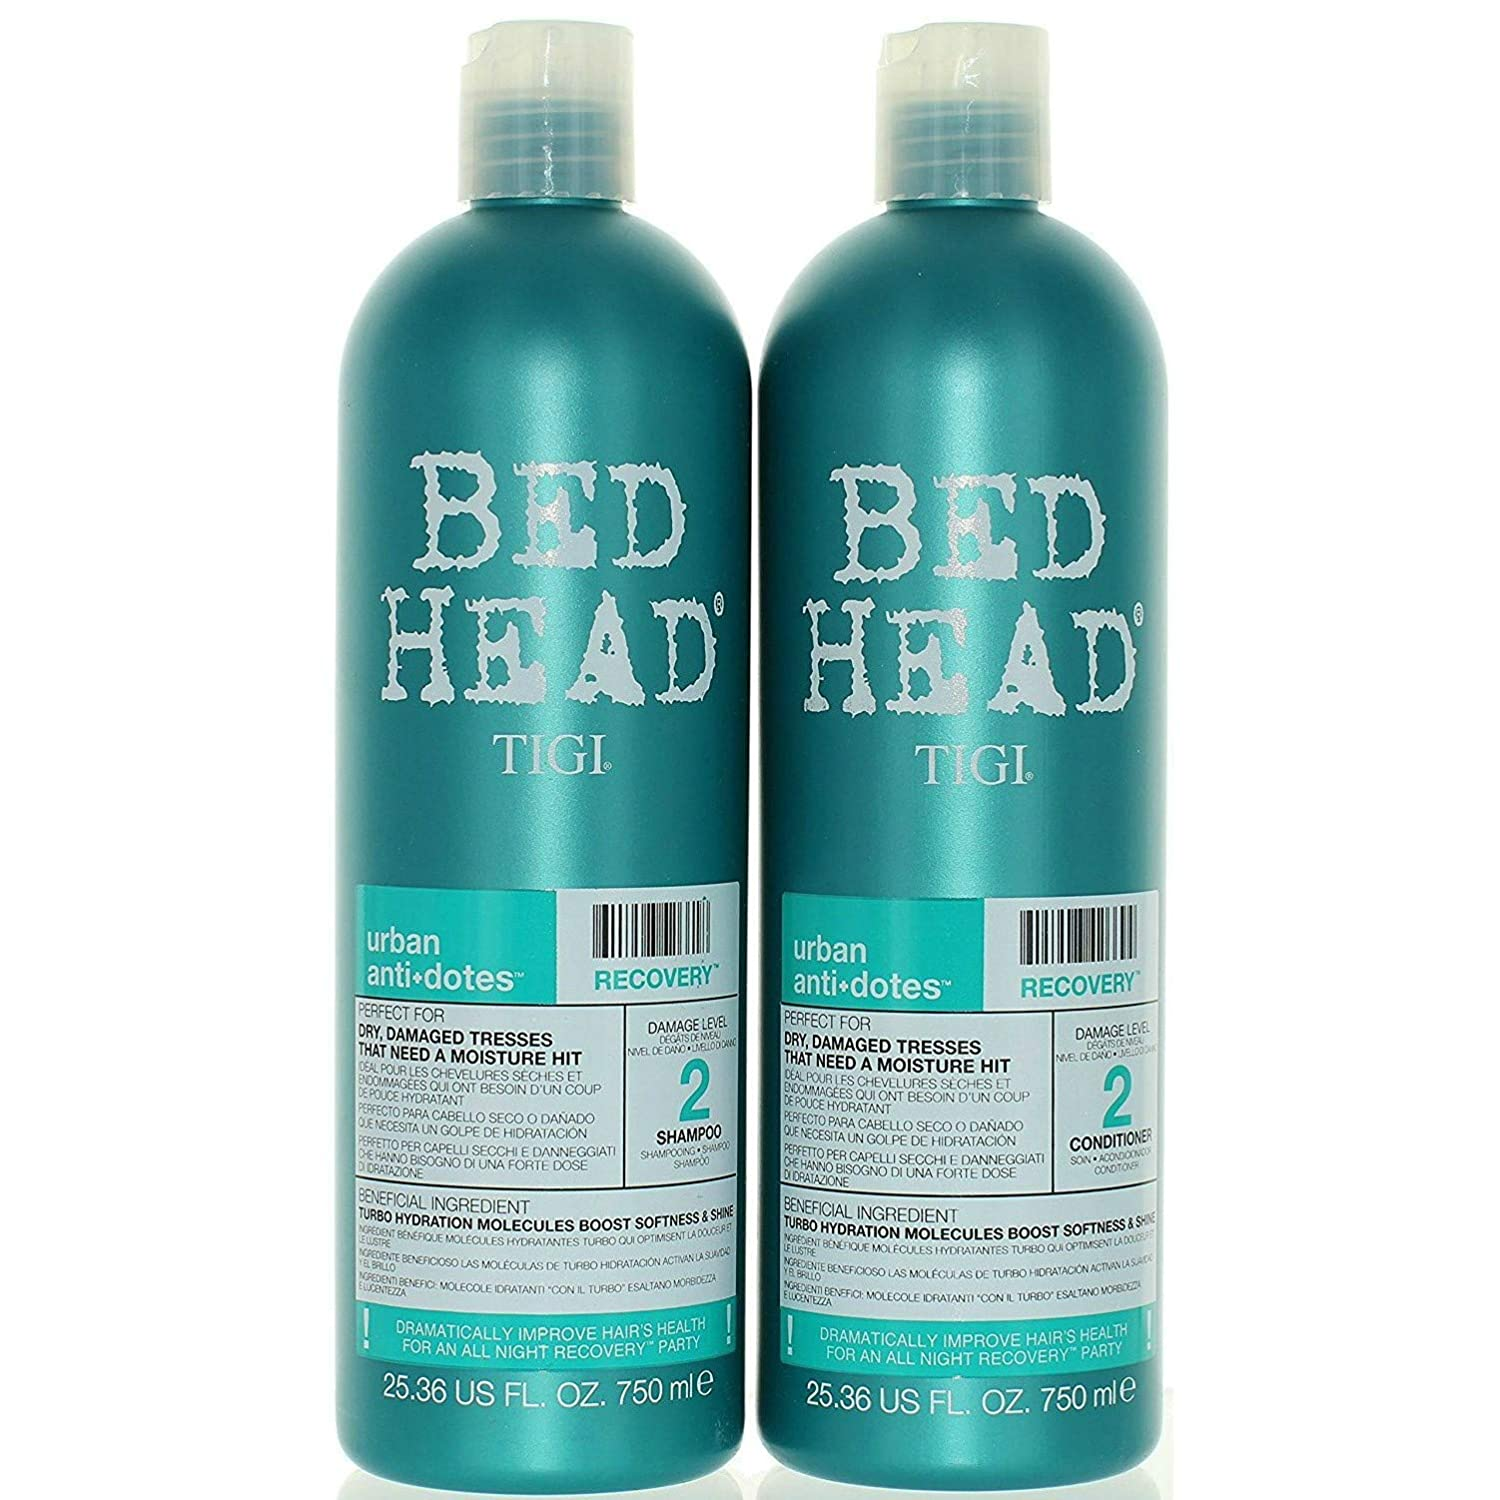 TIGI Bed Head Urban Anti-dote Recovery Shampoo & Conditioner Duo Damage Level 2 (25.36oz) by TIGI B003T1G0XI